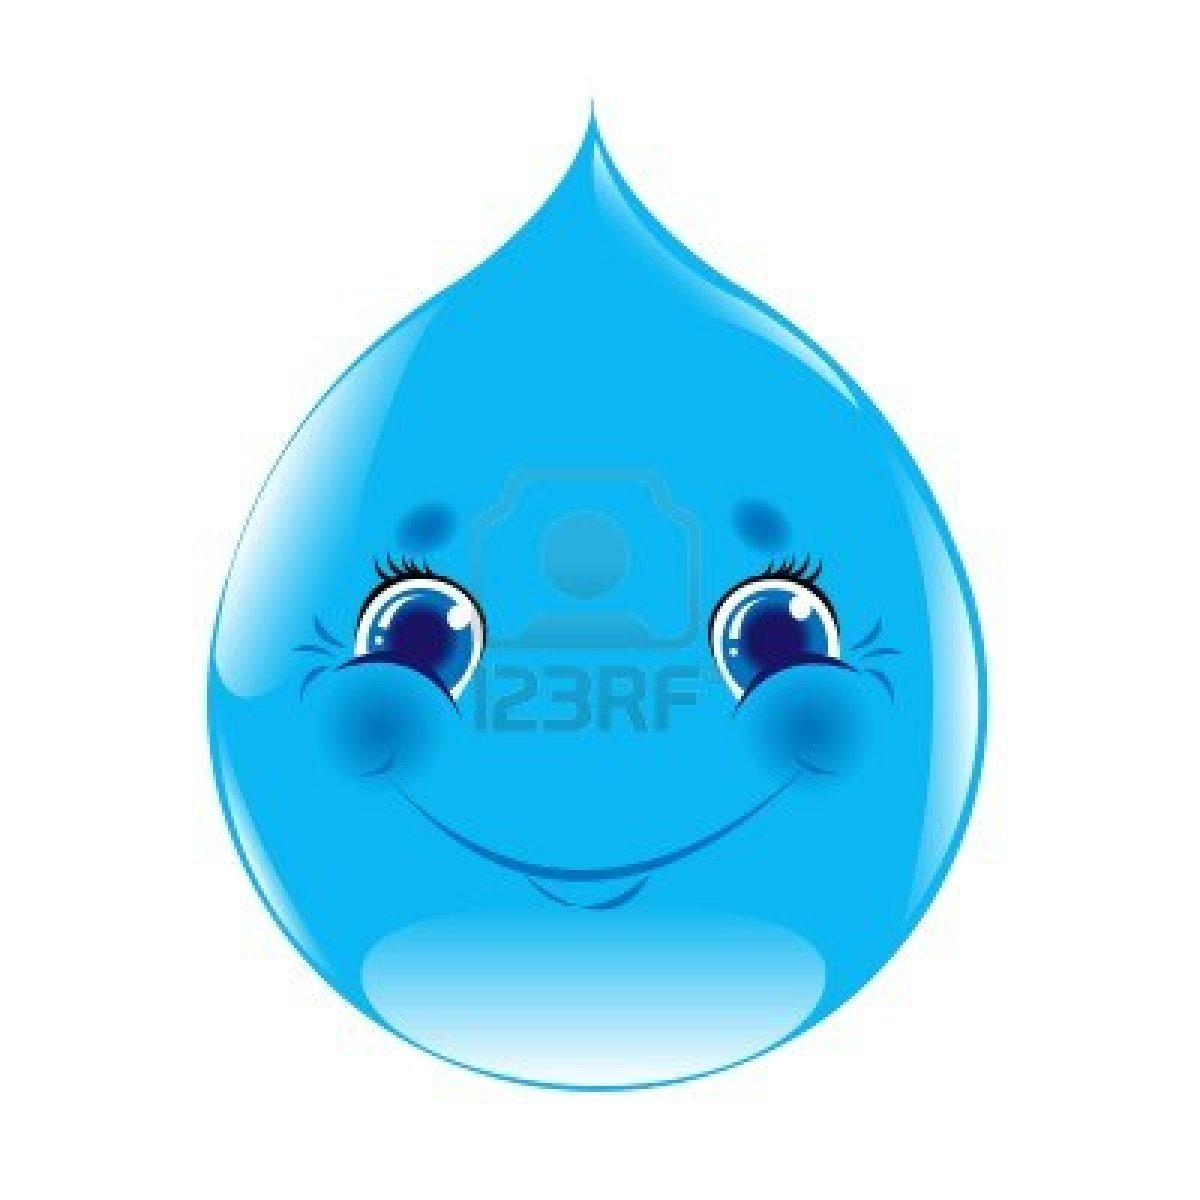 whispering stream autobiography of a water droplet